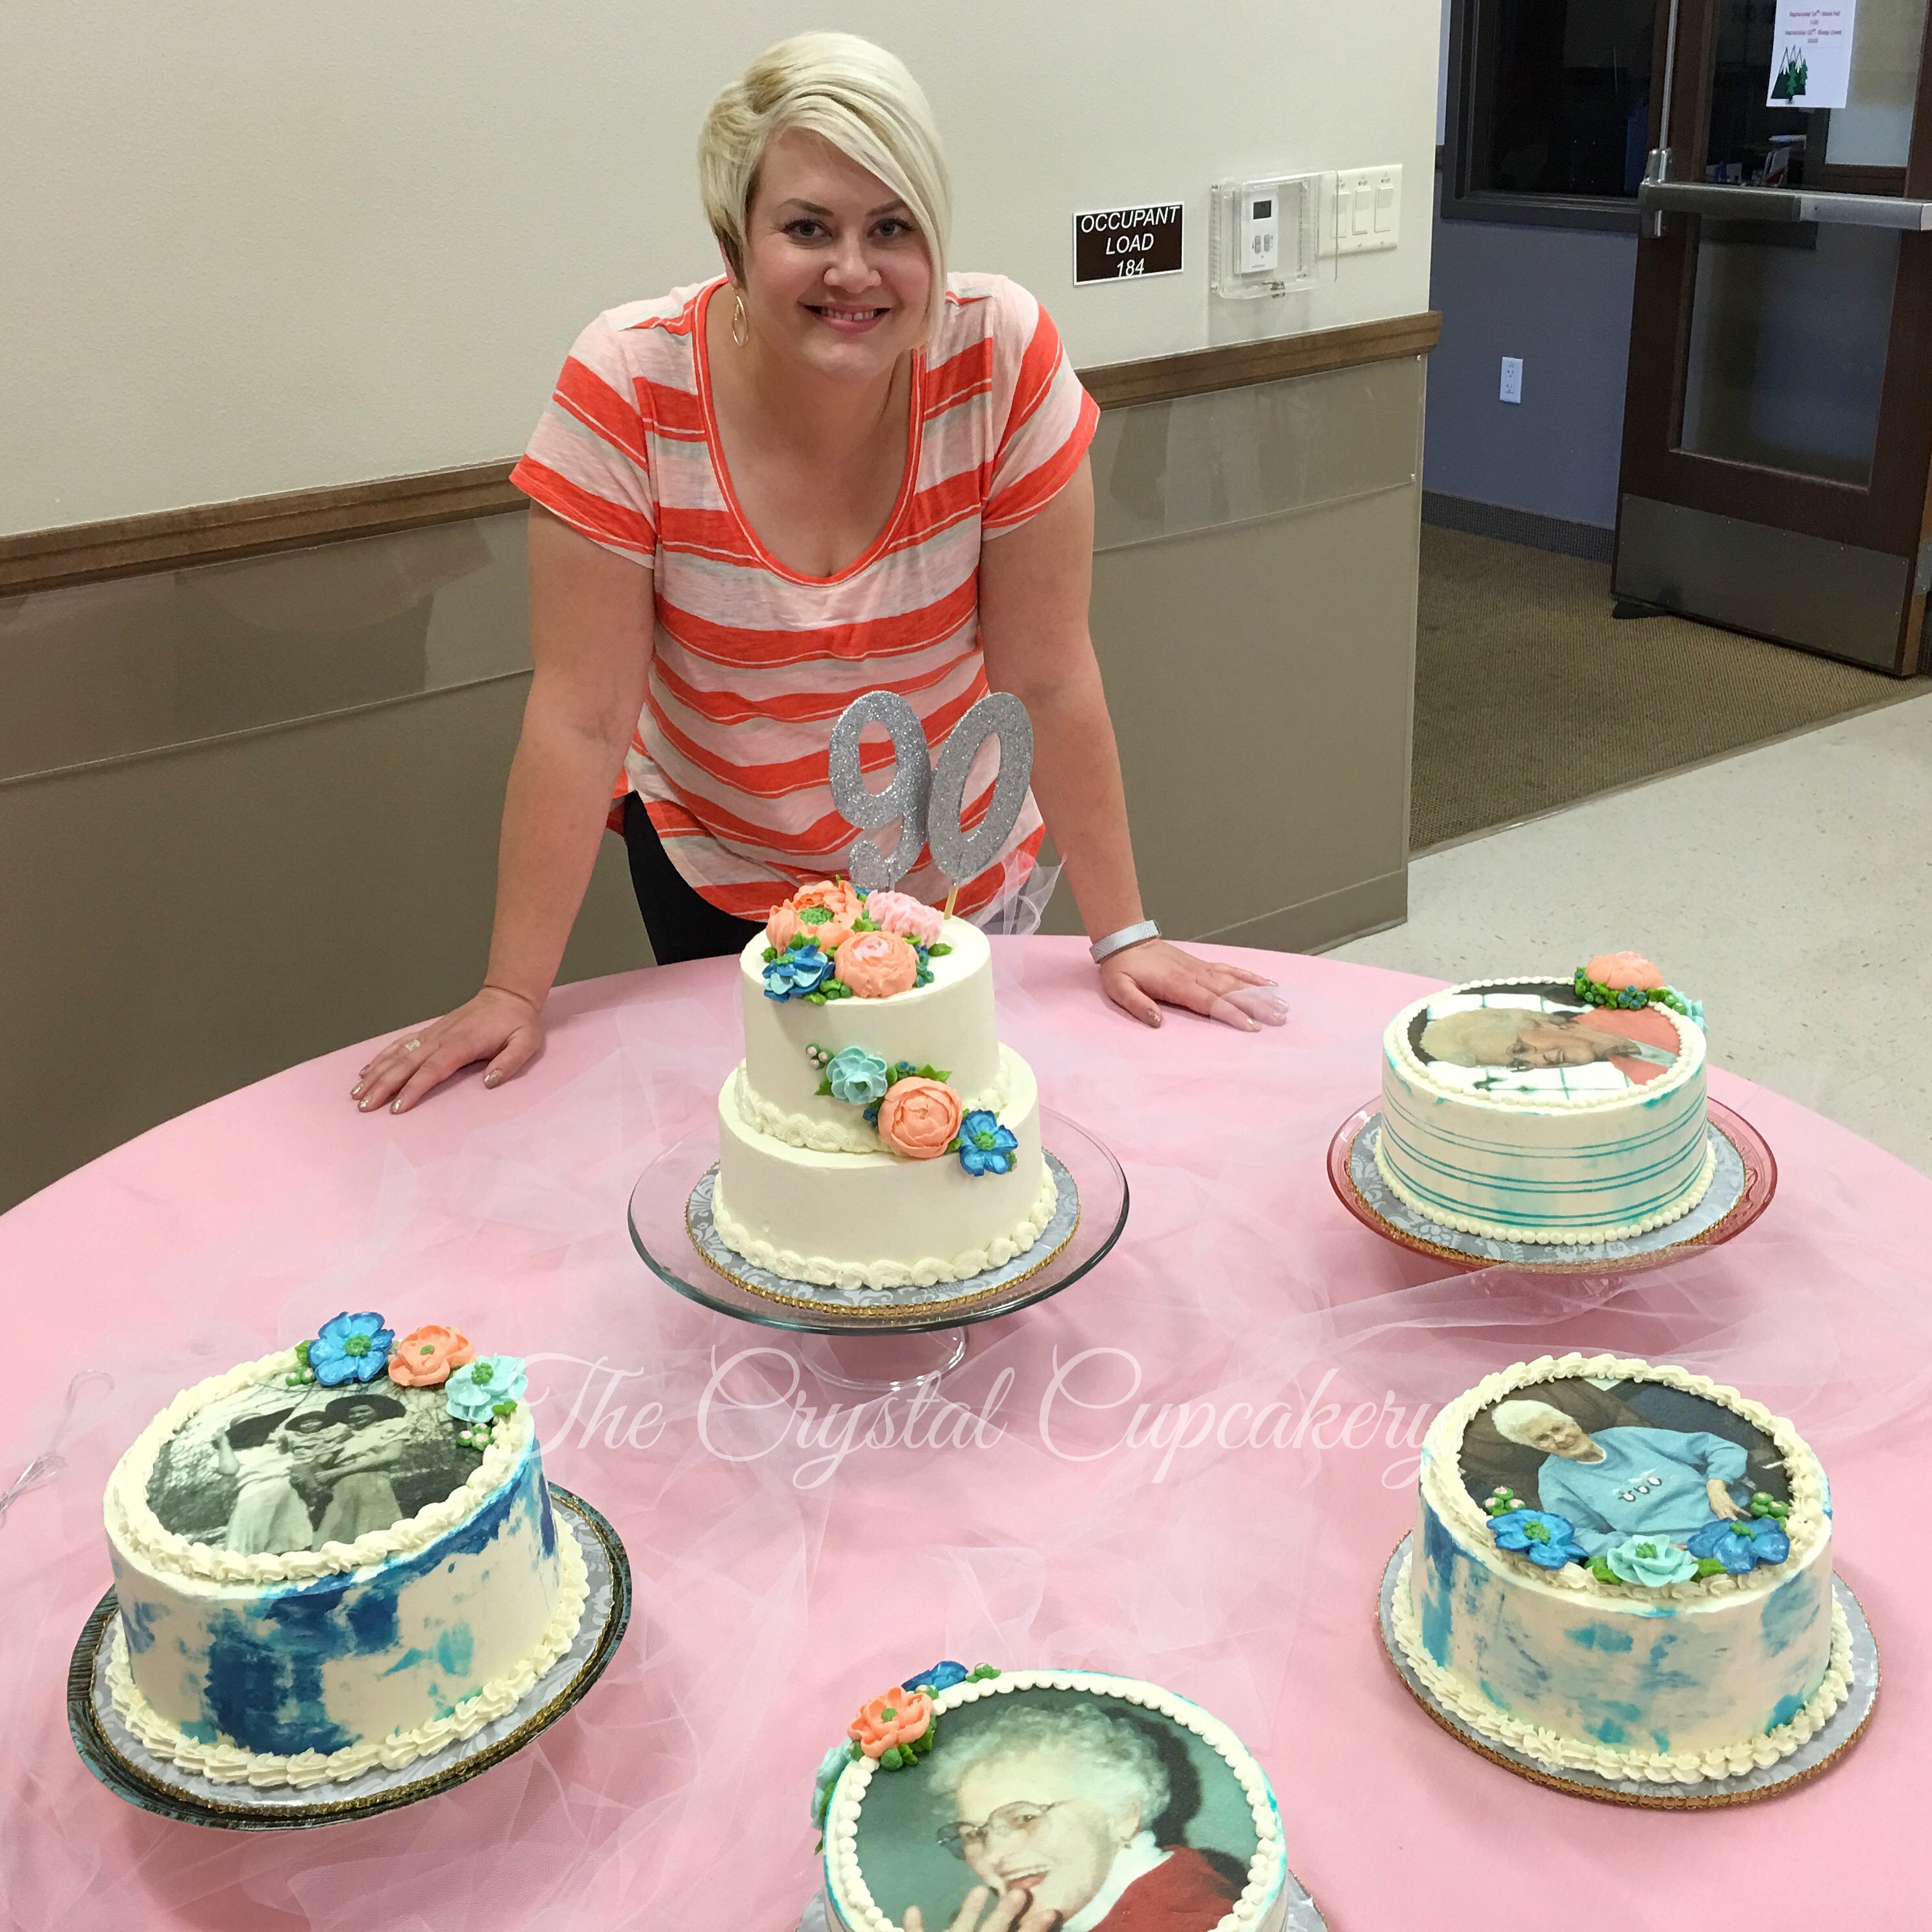 Crystal Frazier, the cake artist